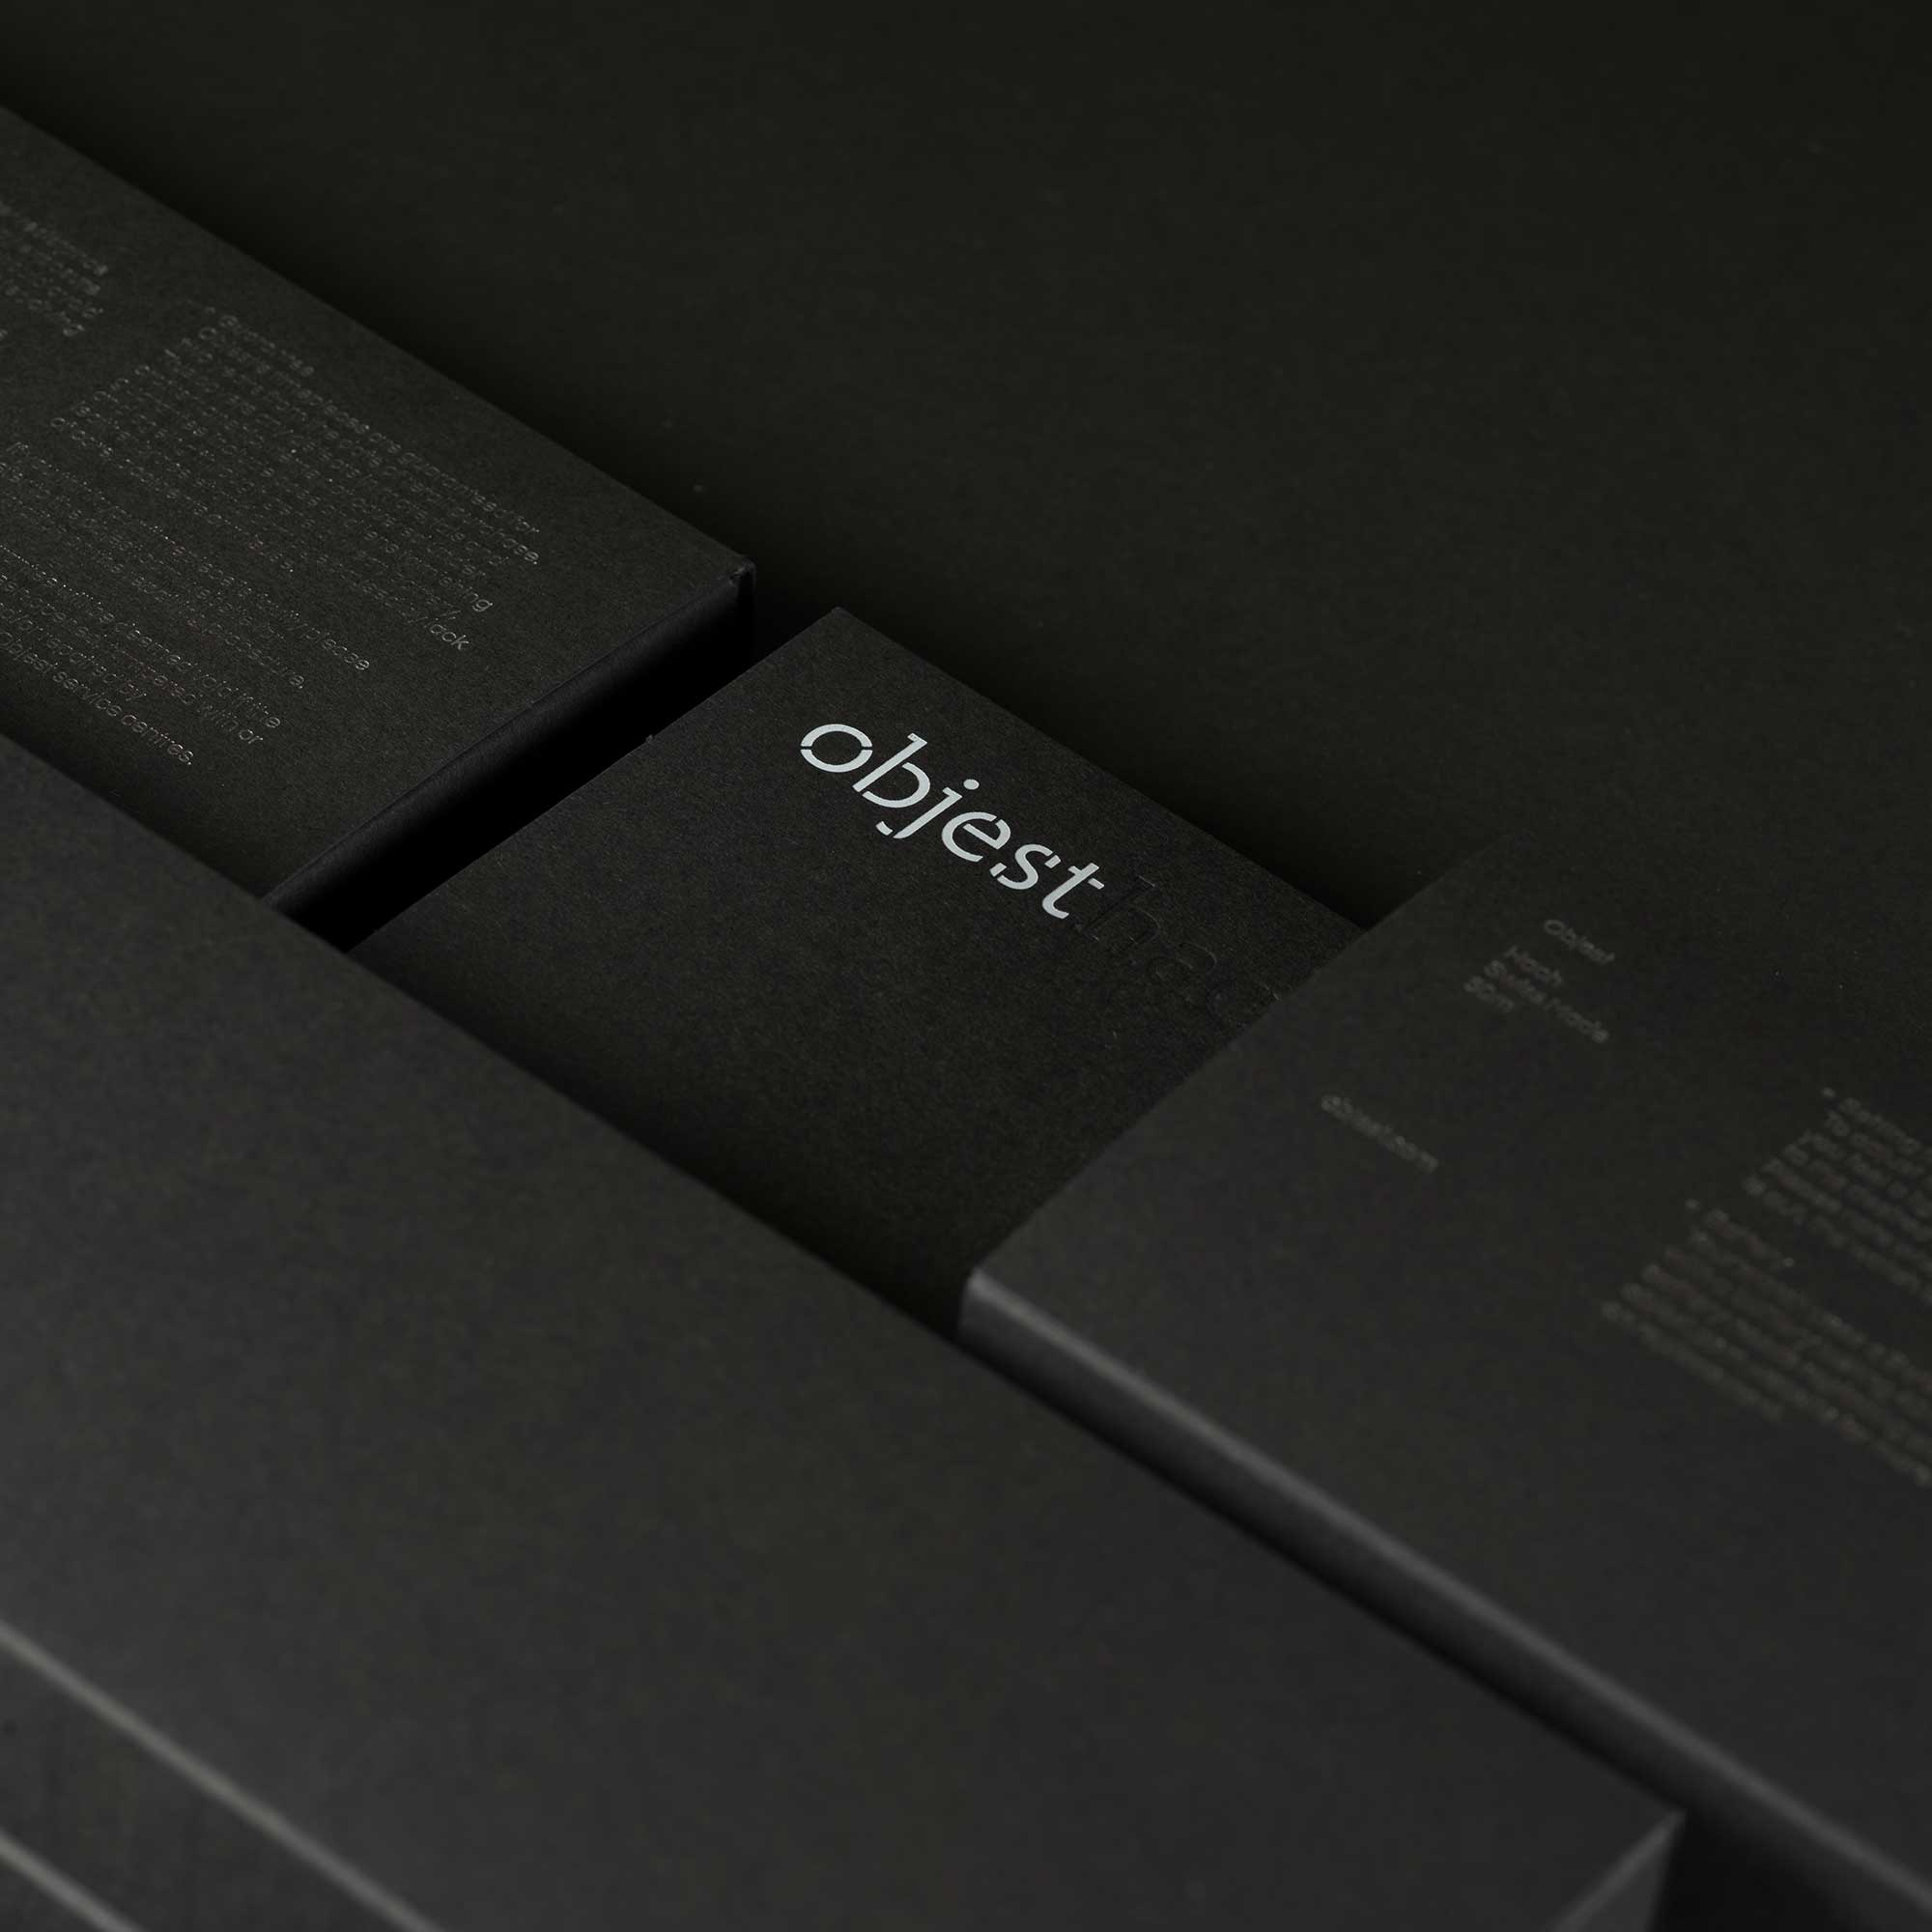 objest-hach-packaging